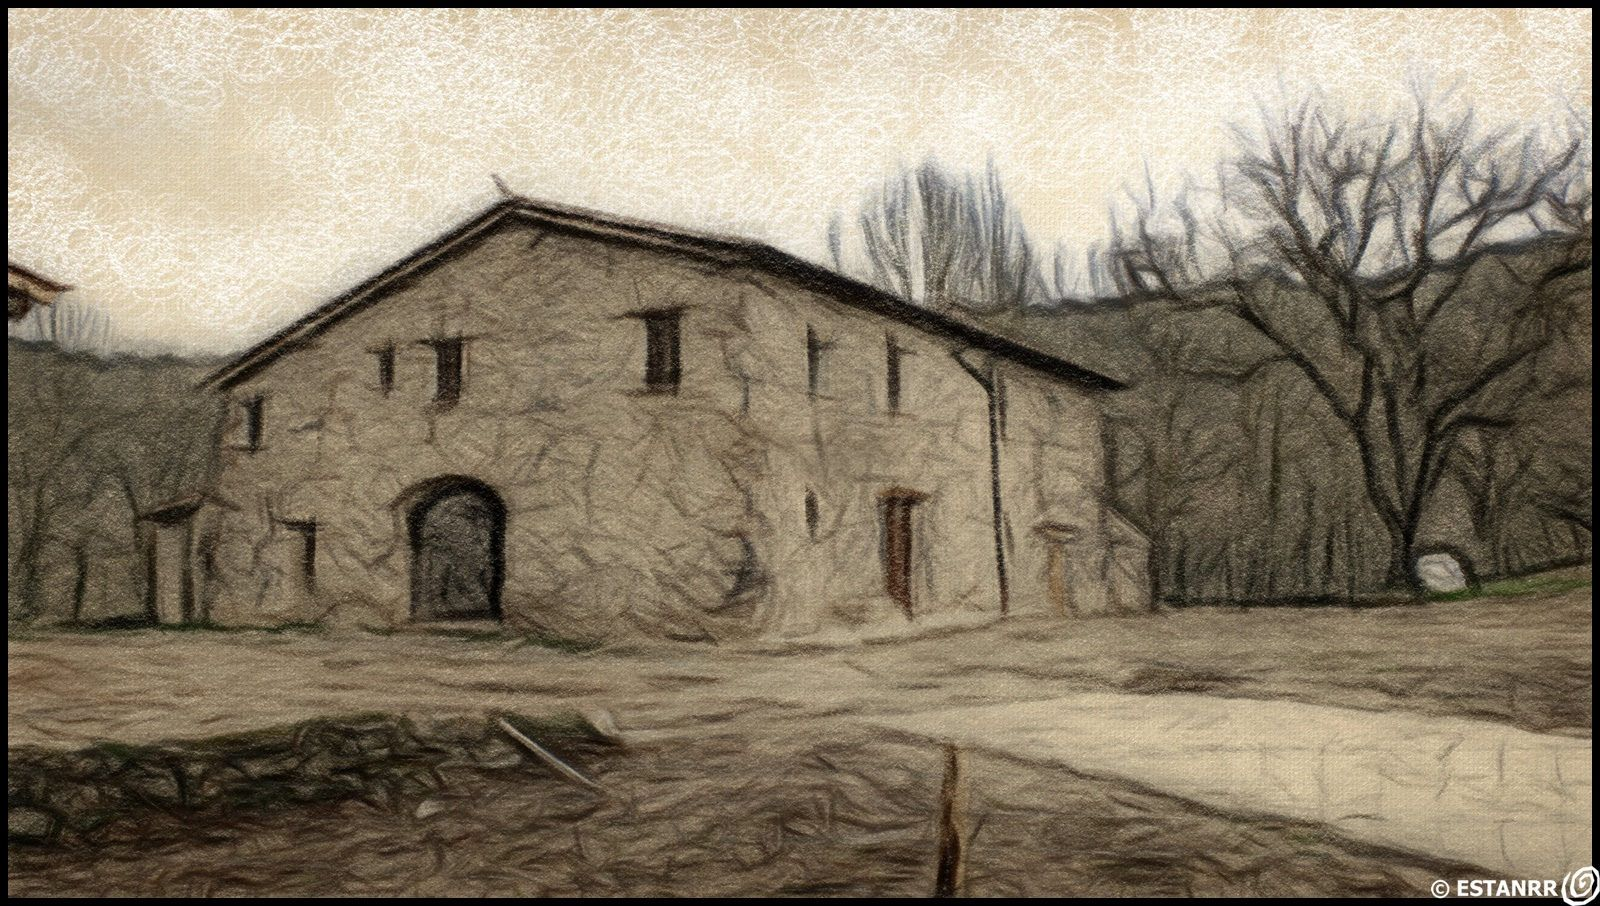 Made with Mediachance Dynamic Auto Painter software: ESTANRR- PAINT GARROTXA RIBA DEL FLUVIA -COLPEN10JFUJI5792-20170221